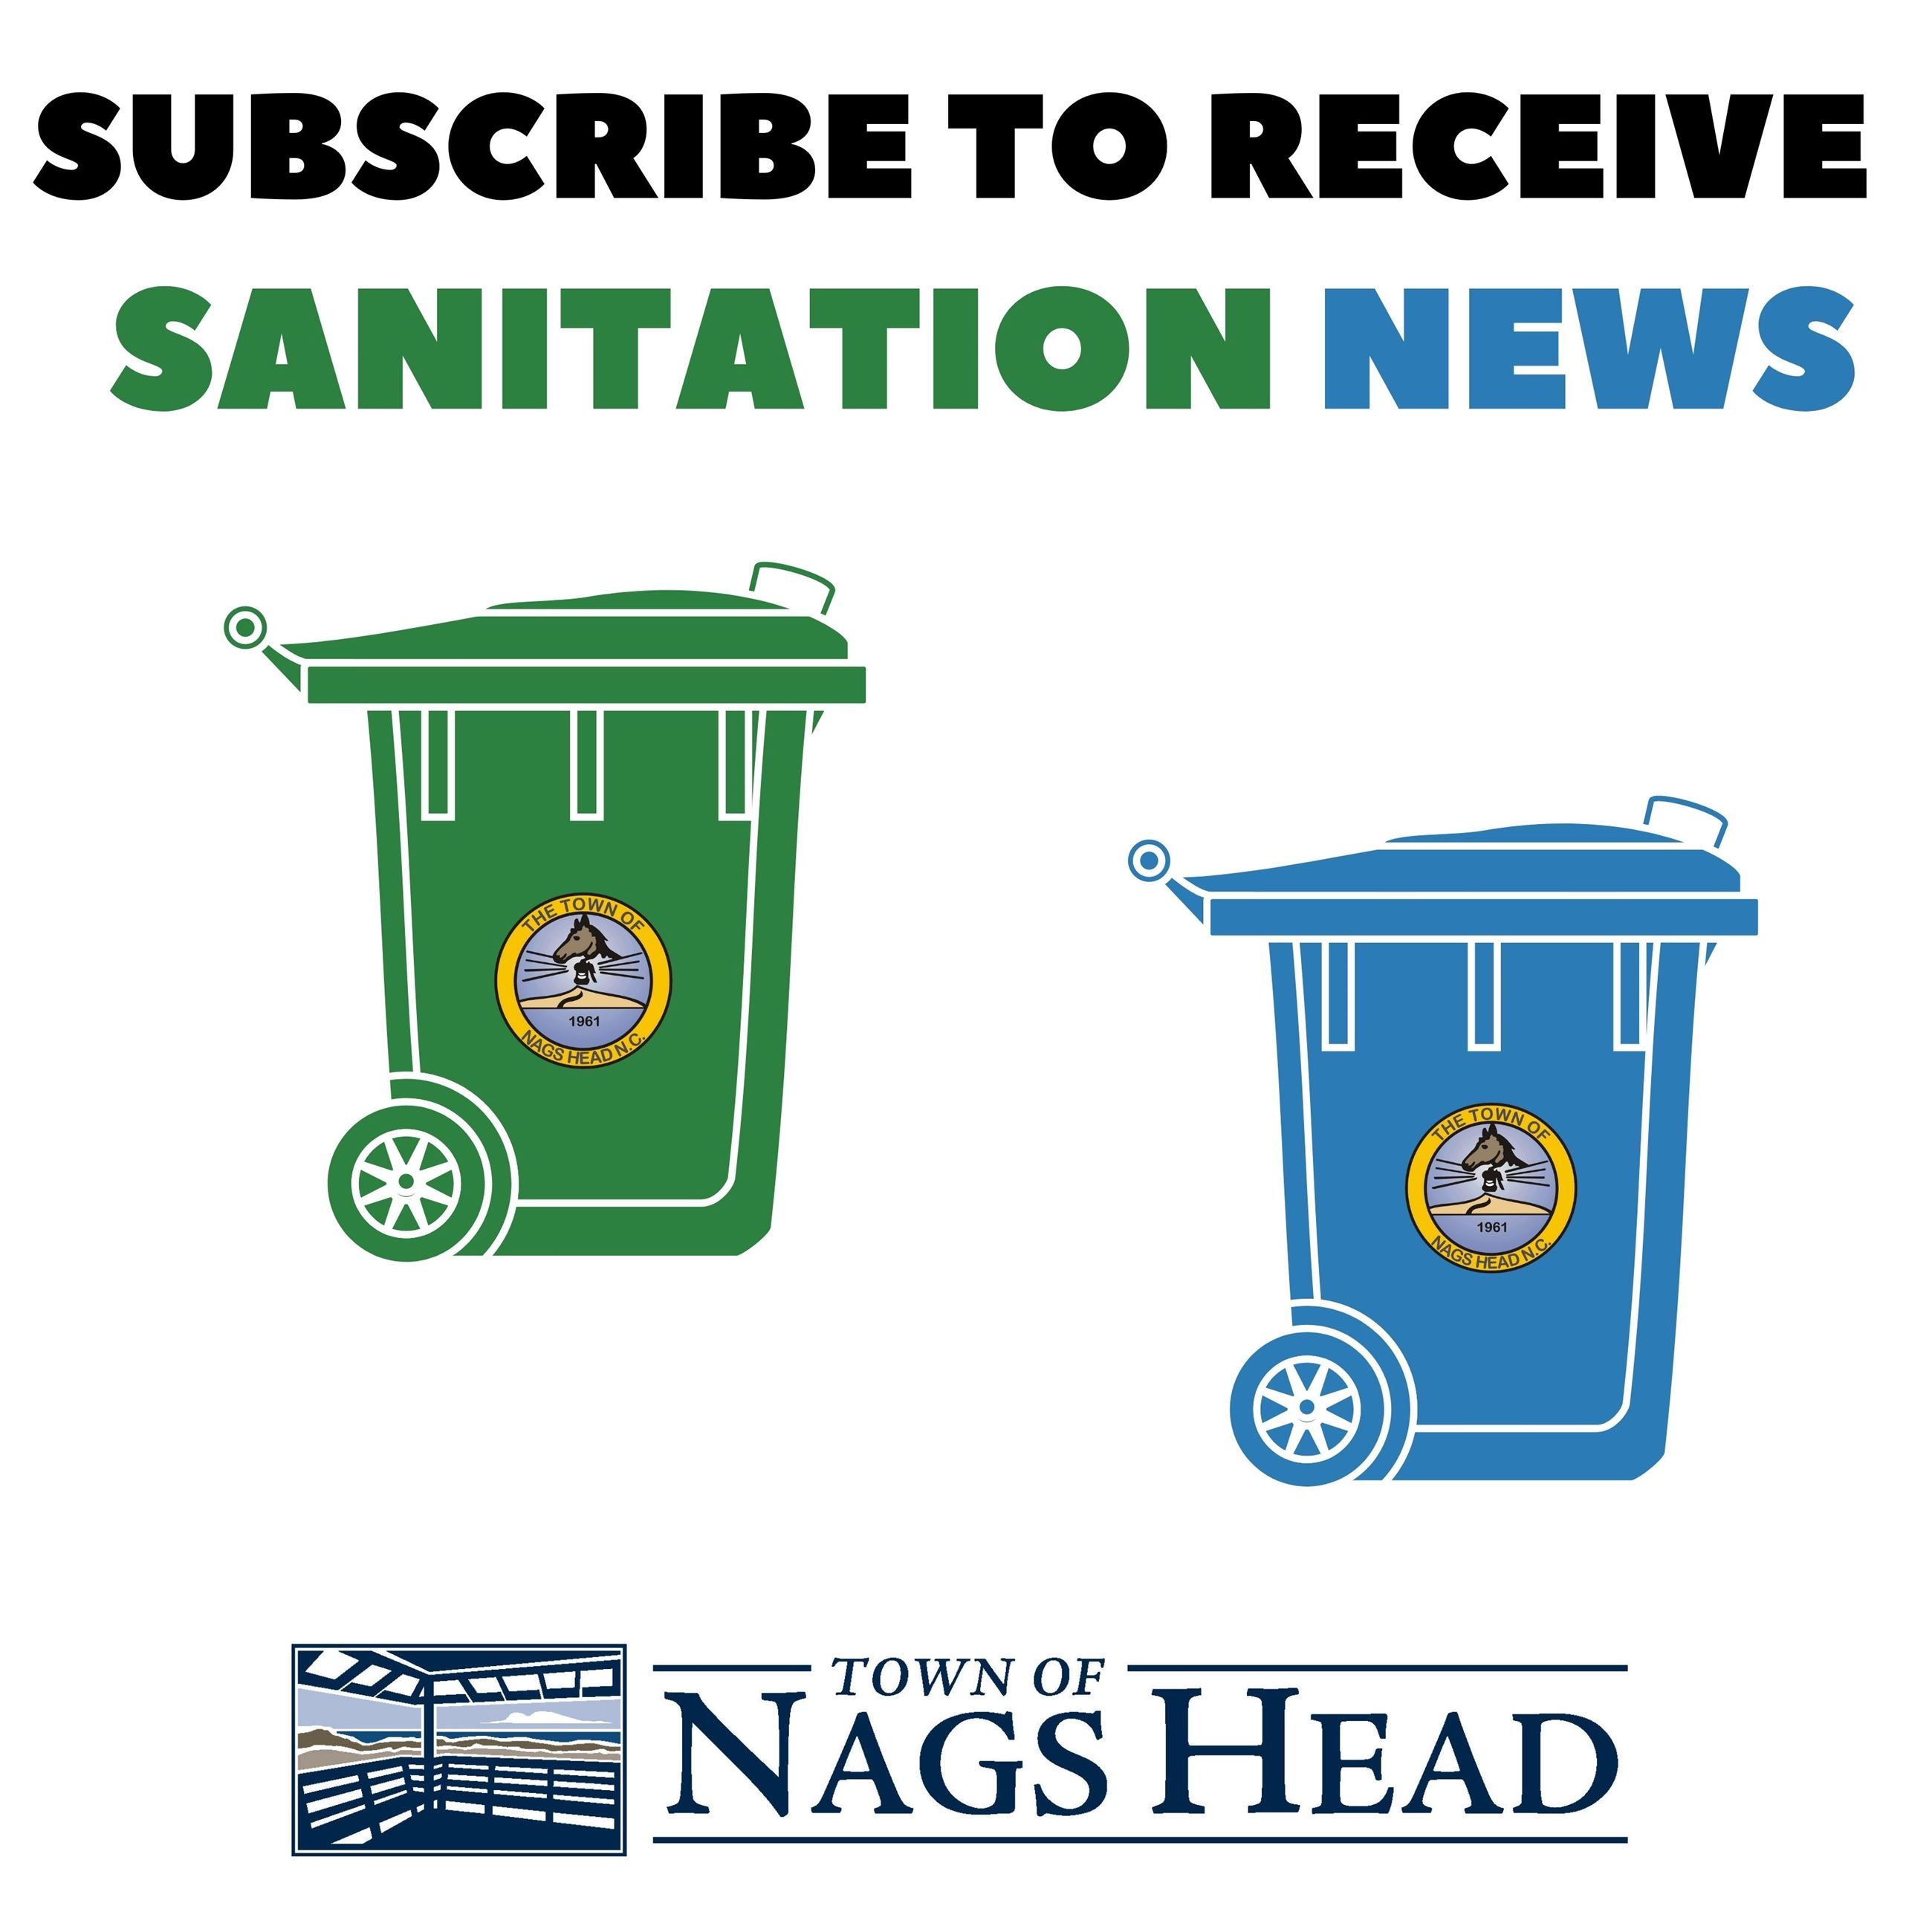 Subscribe to Receive Sanitation News